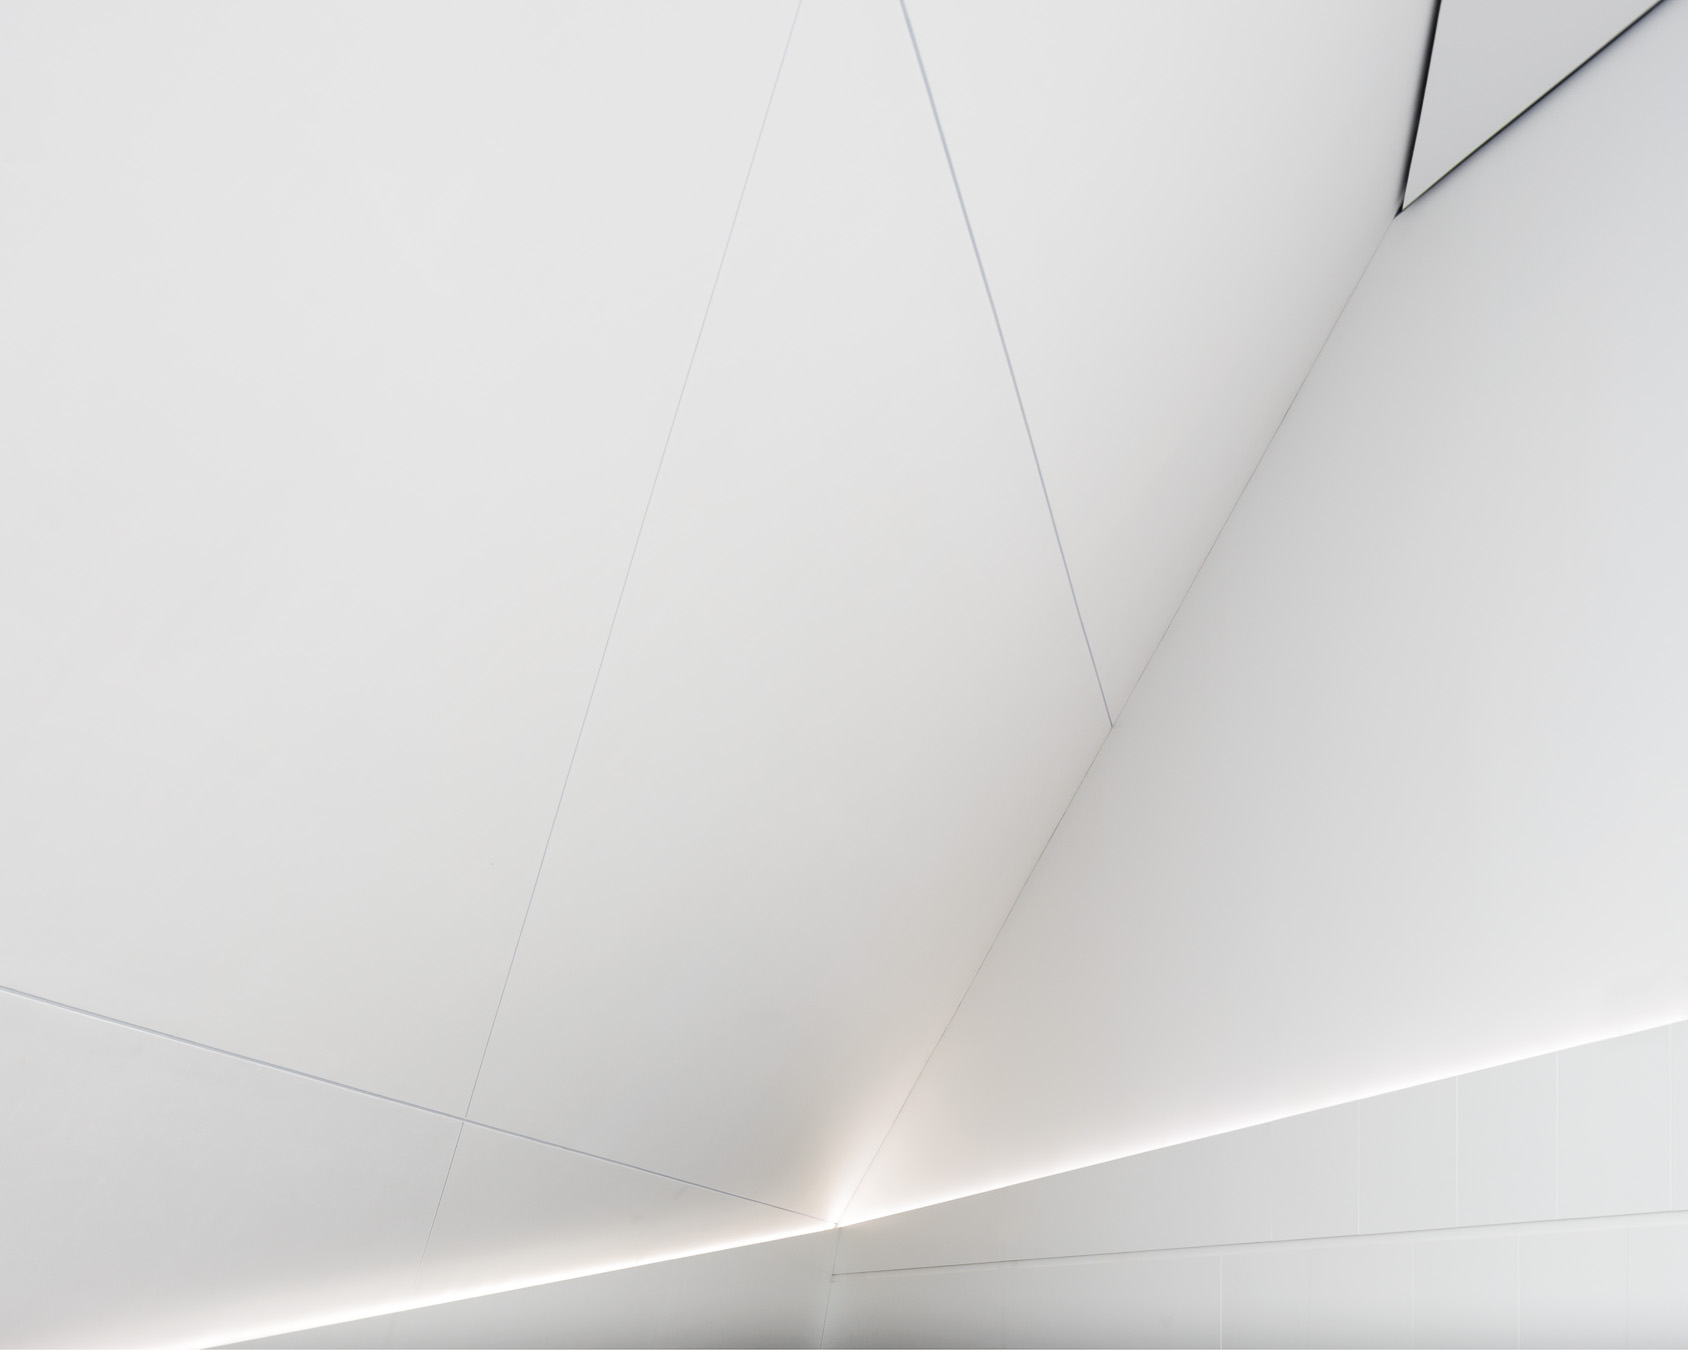 213-Zaha Hadid Broad Museum Lansing Doublespace Toronto Architectural Photography.jpg